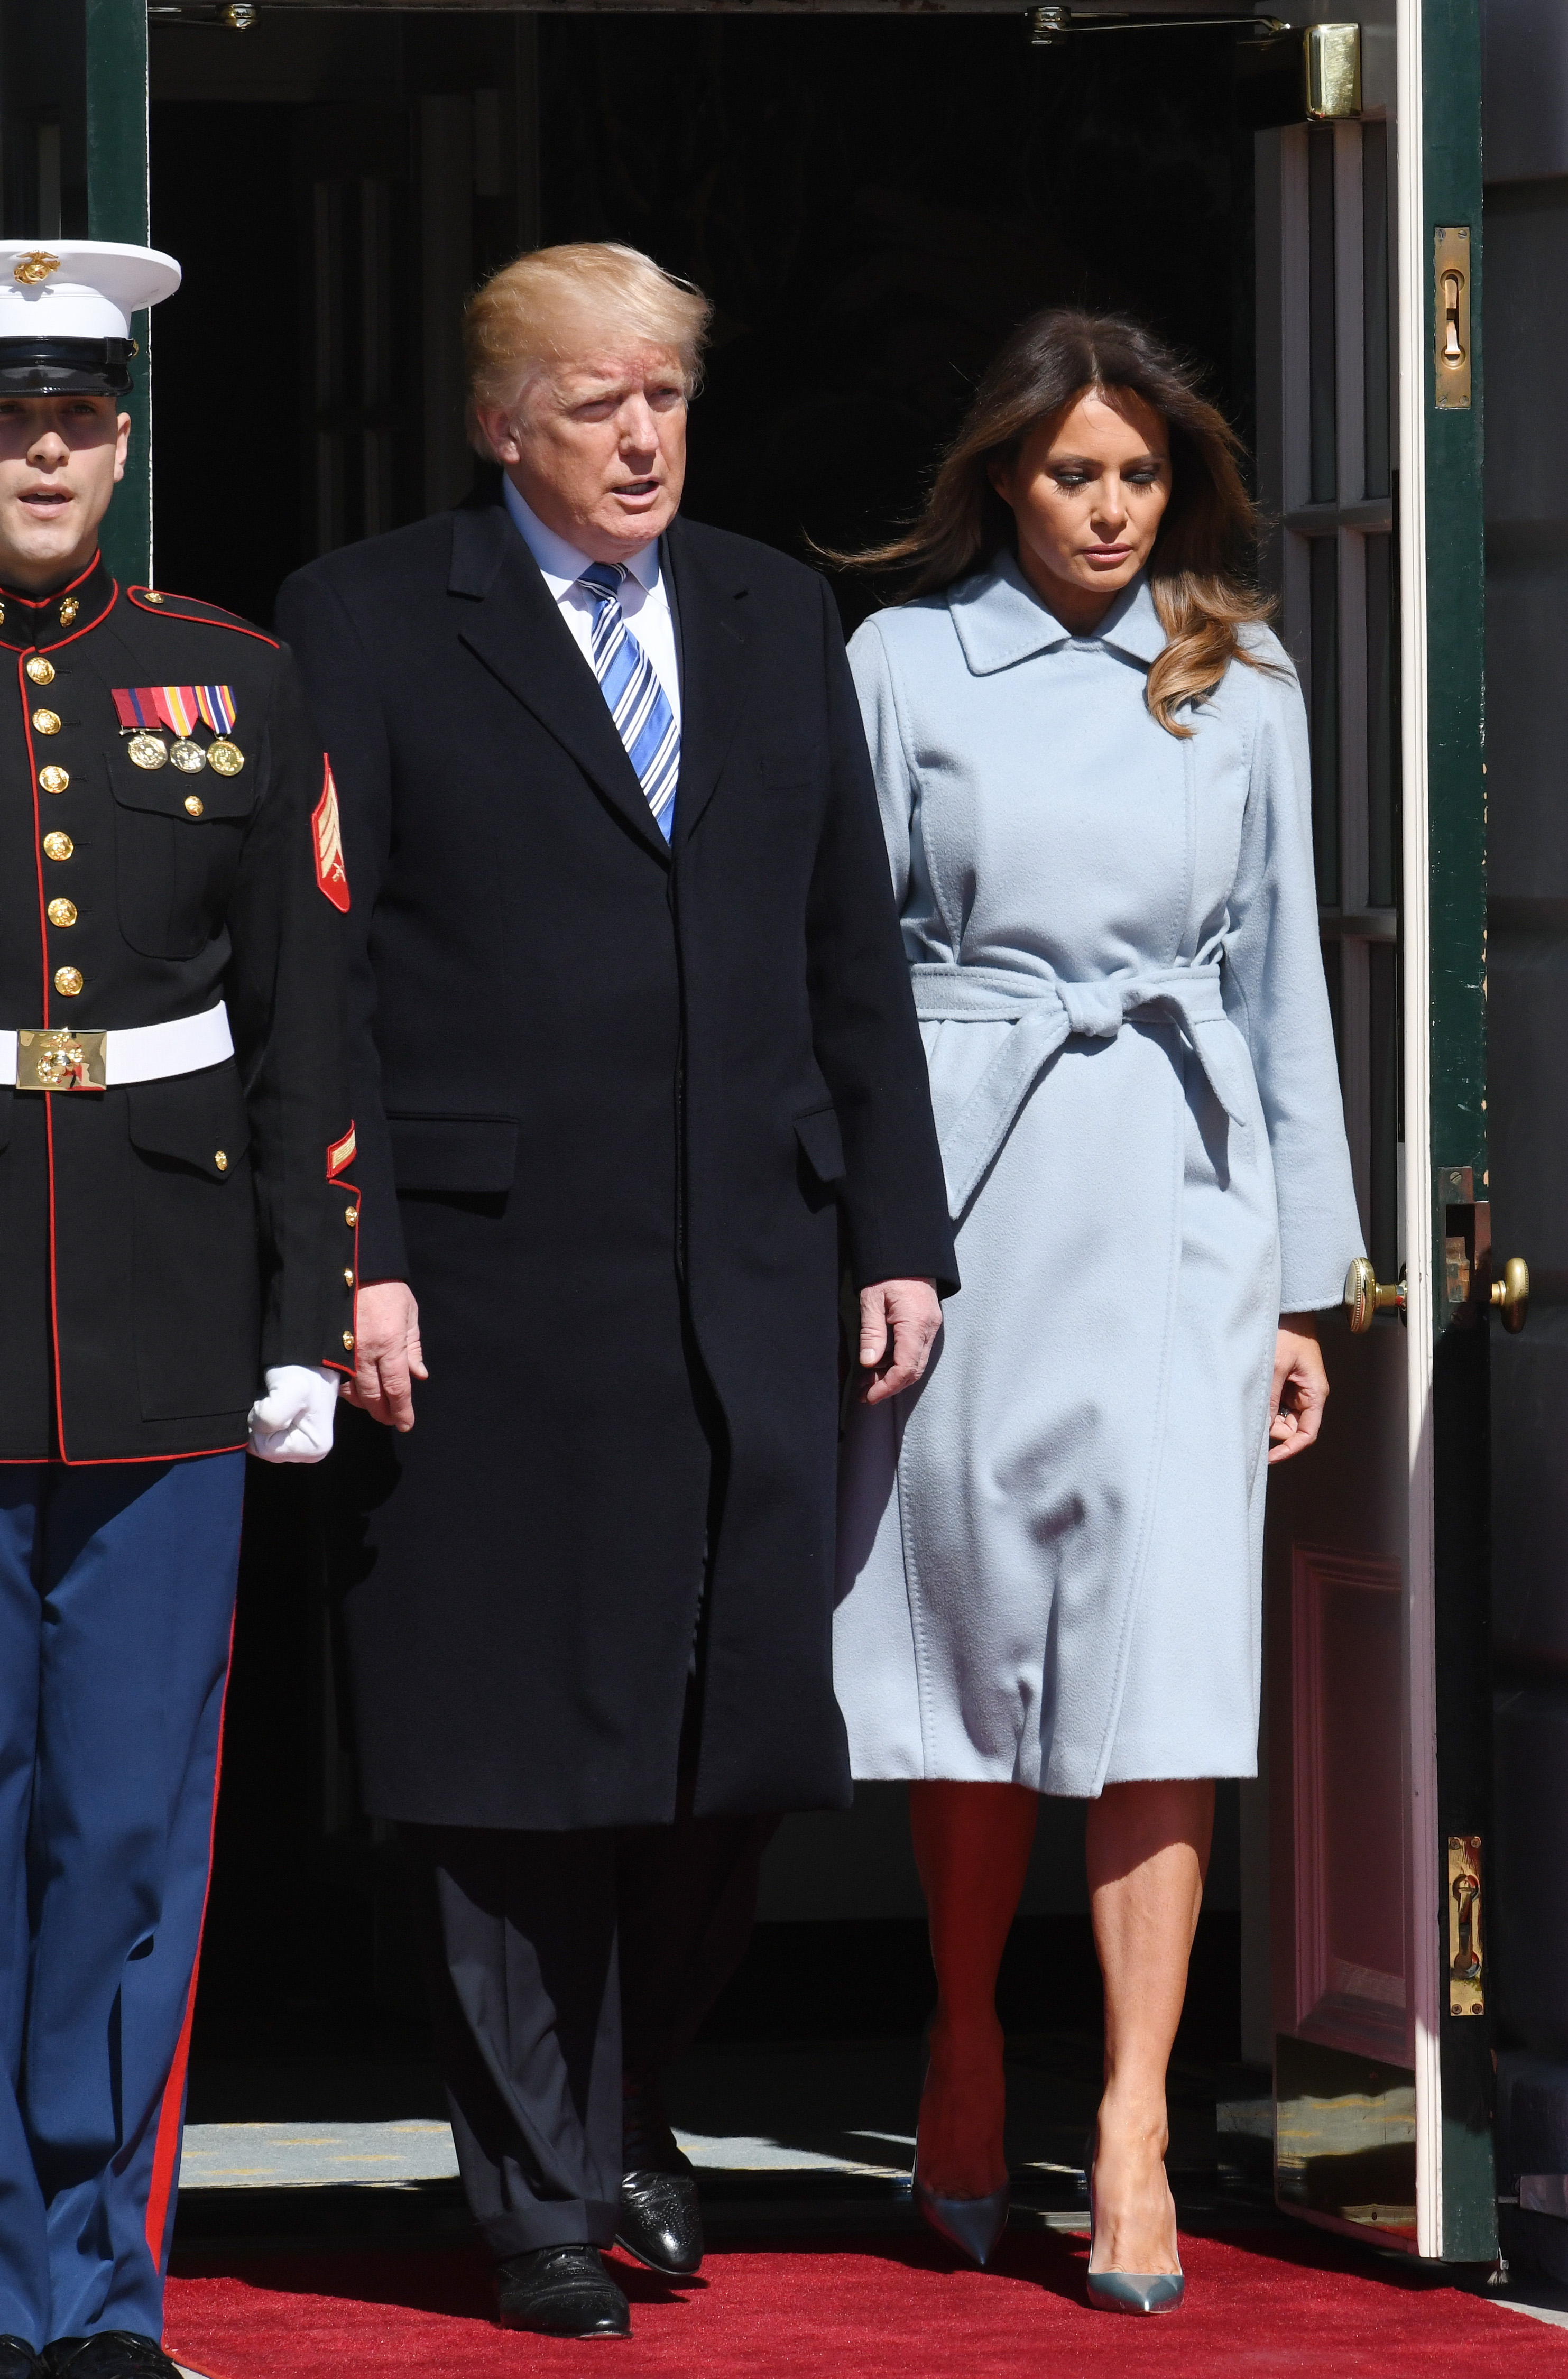 March 5, 2018 - Washington, District of Columbia, United States of America - United States President Donald J. Trump and first lady Melania Trump arrive to greet Prime Minister Benjamin Netanyahu and Sara Netanyahu of Israel at the White House in Washington, DC, March 5, 2018.  Credit: Olivier Douliery / Pool via CNP (Credit Image: © Olivier Douliery/CNP via ZUMA Wire) <P> Pictured: President Donald Trump and first lady Melania Trump greet Prime Minister Benjamin Netanyahu and Sara Netanyahu of Israel <B>Ref: SPL1668258  050318  </B><BR/> Picture by: Zuma / Splash News<BR/> </P><P> <B>Splash News and Pictures</B><BR/> Los Angeles:310-821-2666<BR/> New York:212-619-2666<BR/> London:870-934-2666<BR/> <span id=